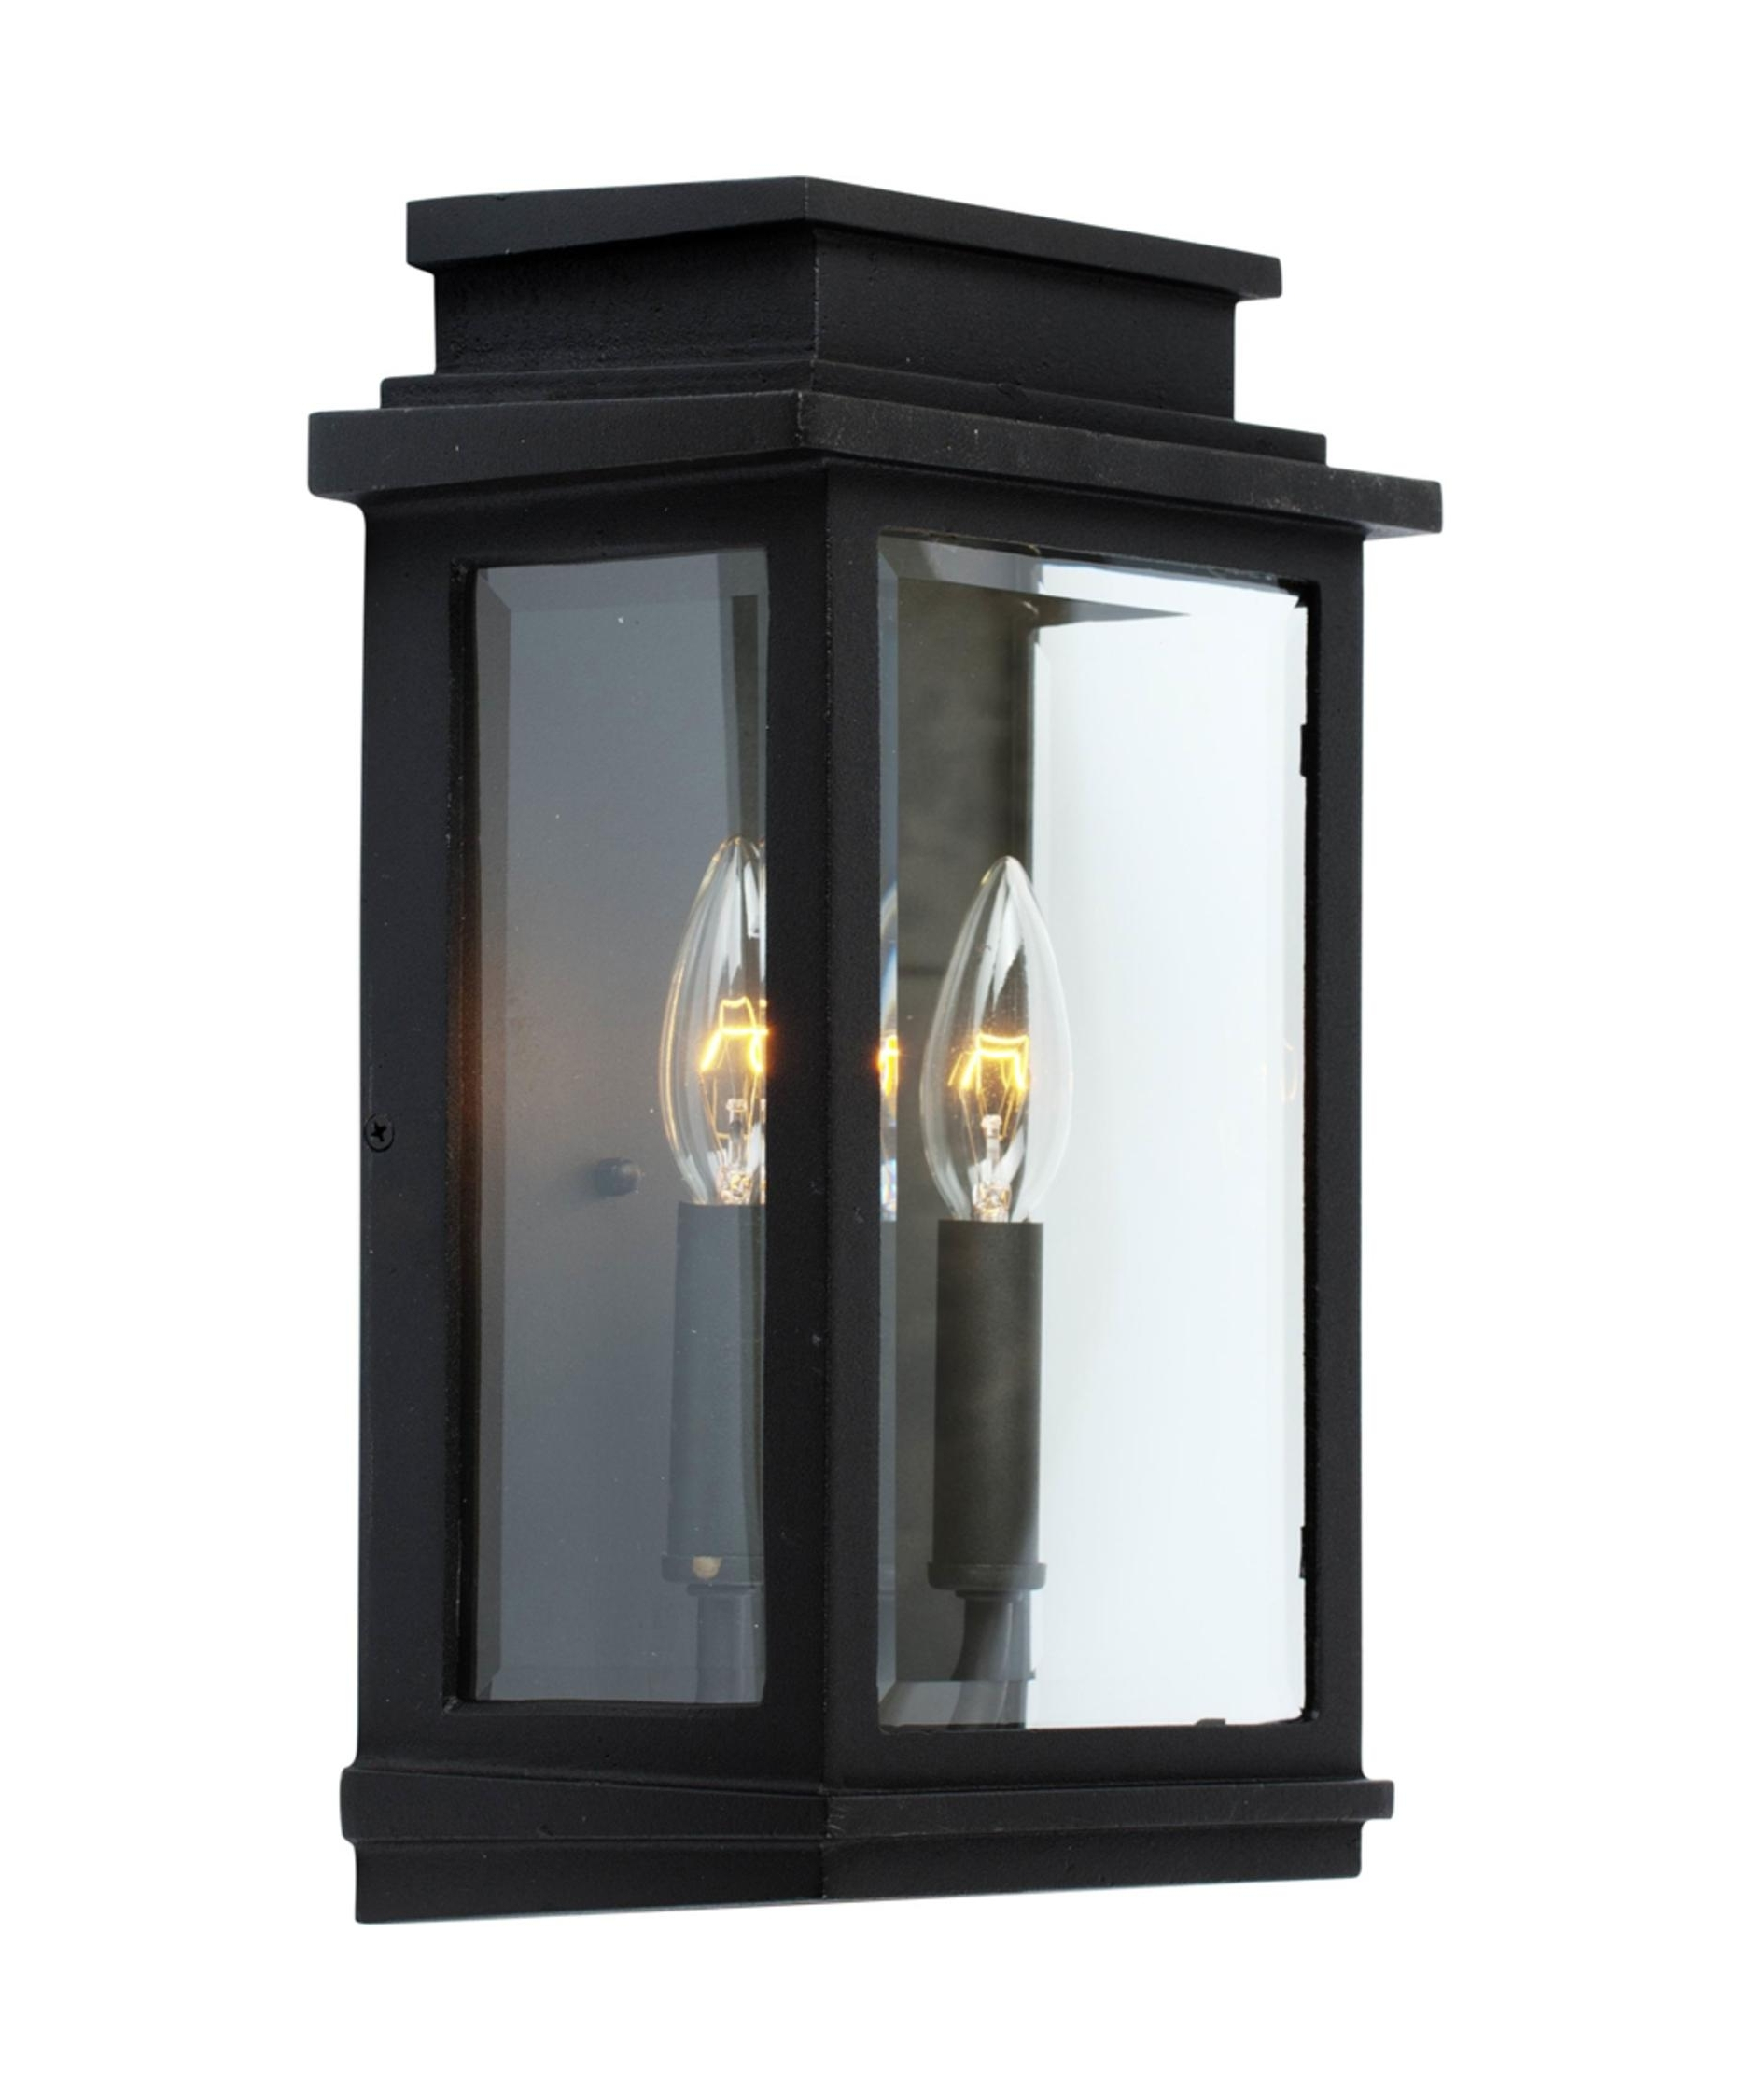 Outdoor Wall Light Glass Inside Most Up To Date Artcraft Ac8391 Fremont 9 Inch Wide 2 Light Outdoor Wall Light (View 17 of 20)